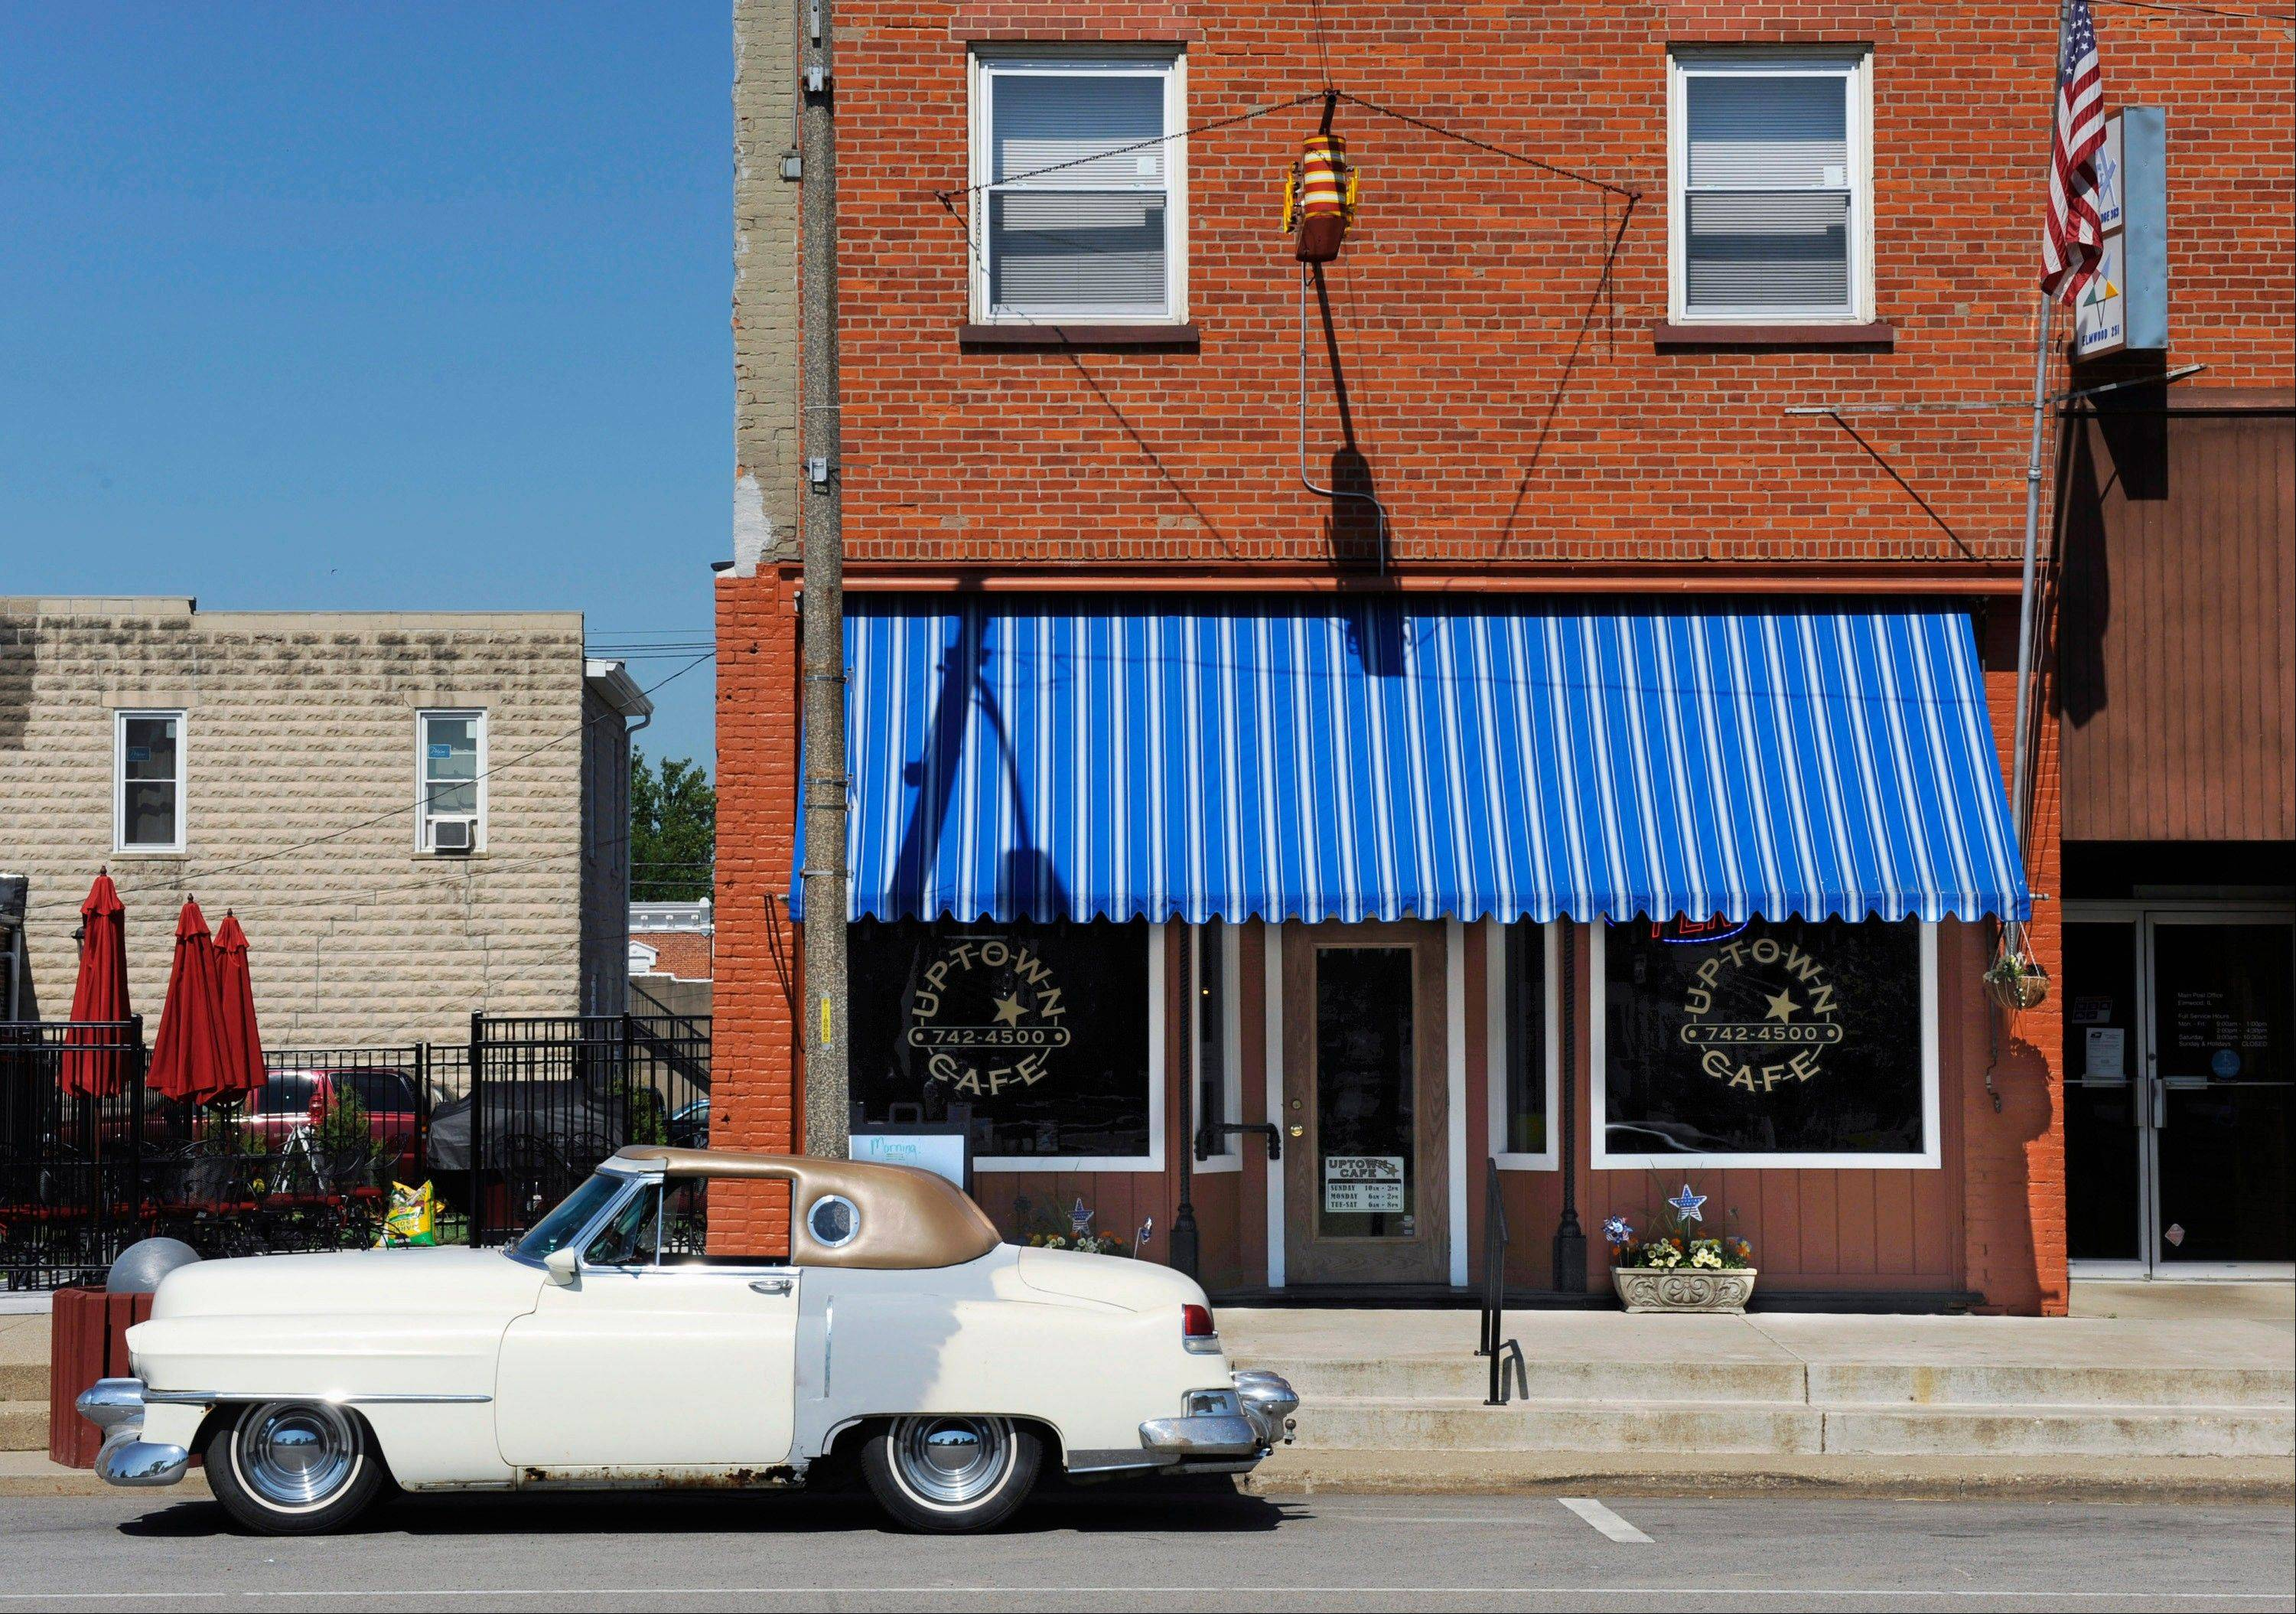 A 1953 Cadillac Fleetwood, modified from a four-door sedan by its owner, Bruce Phelps, stands parked in front of the Uptown Cafe, opened by Shawn and Rita Jones in August, 2011, in downtown Elmwood.